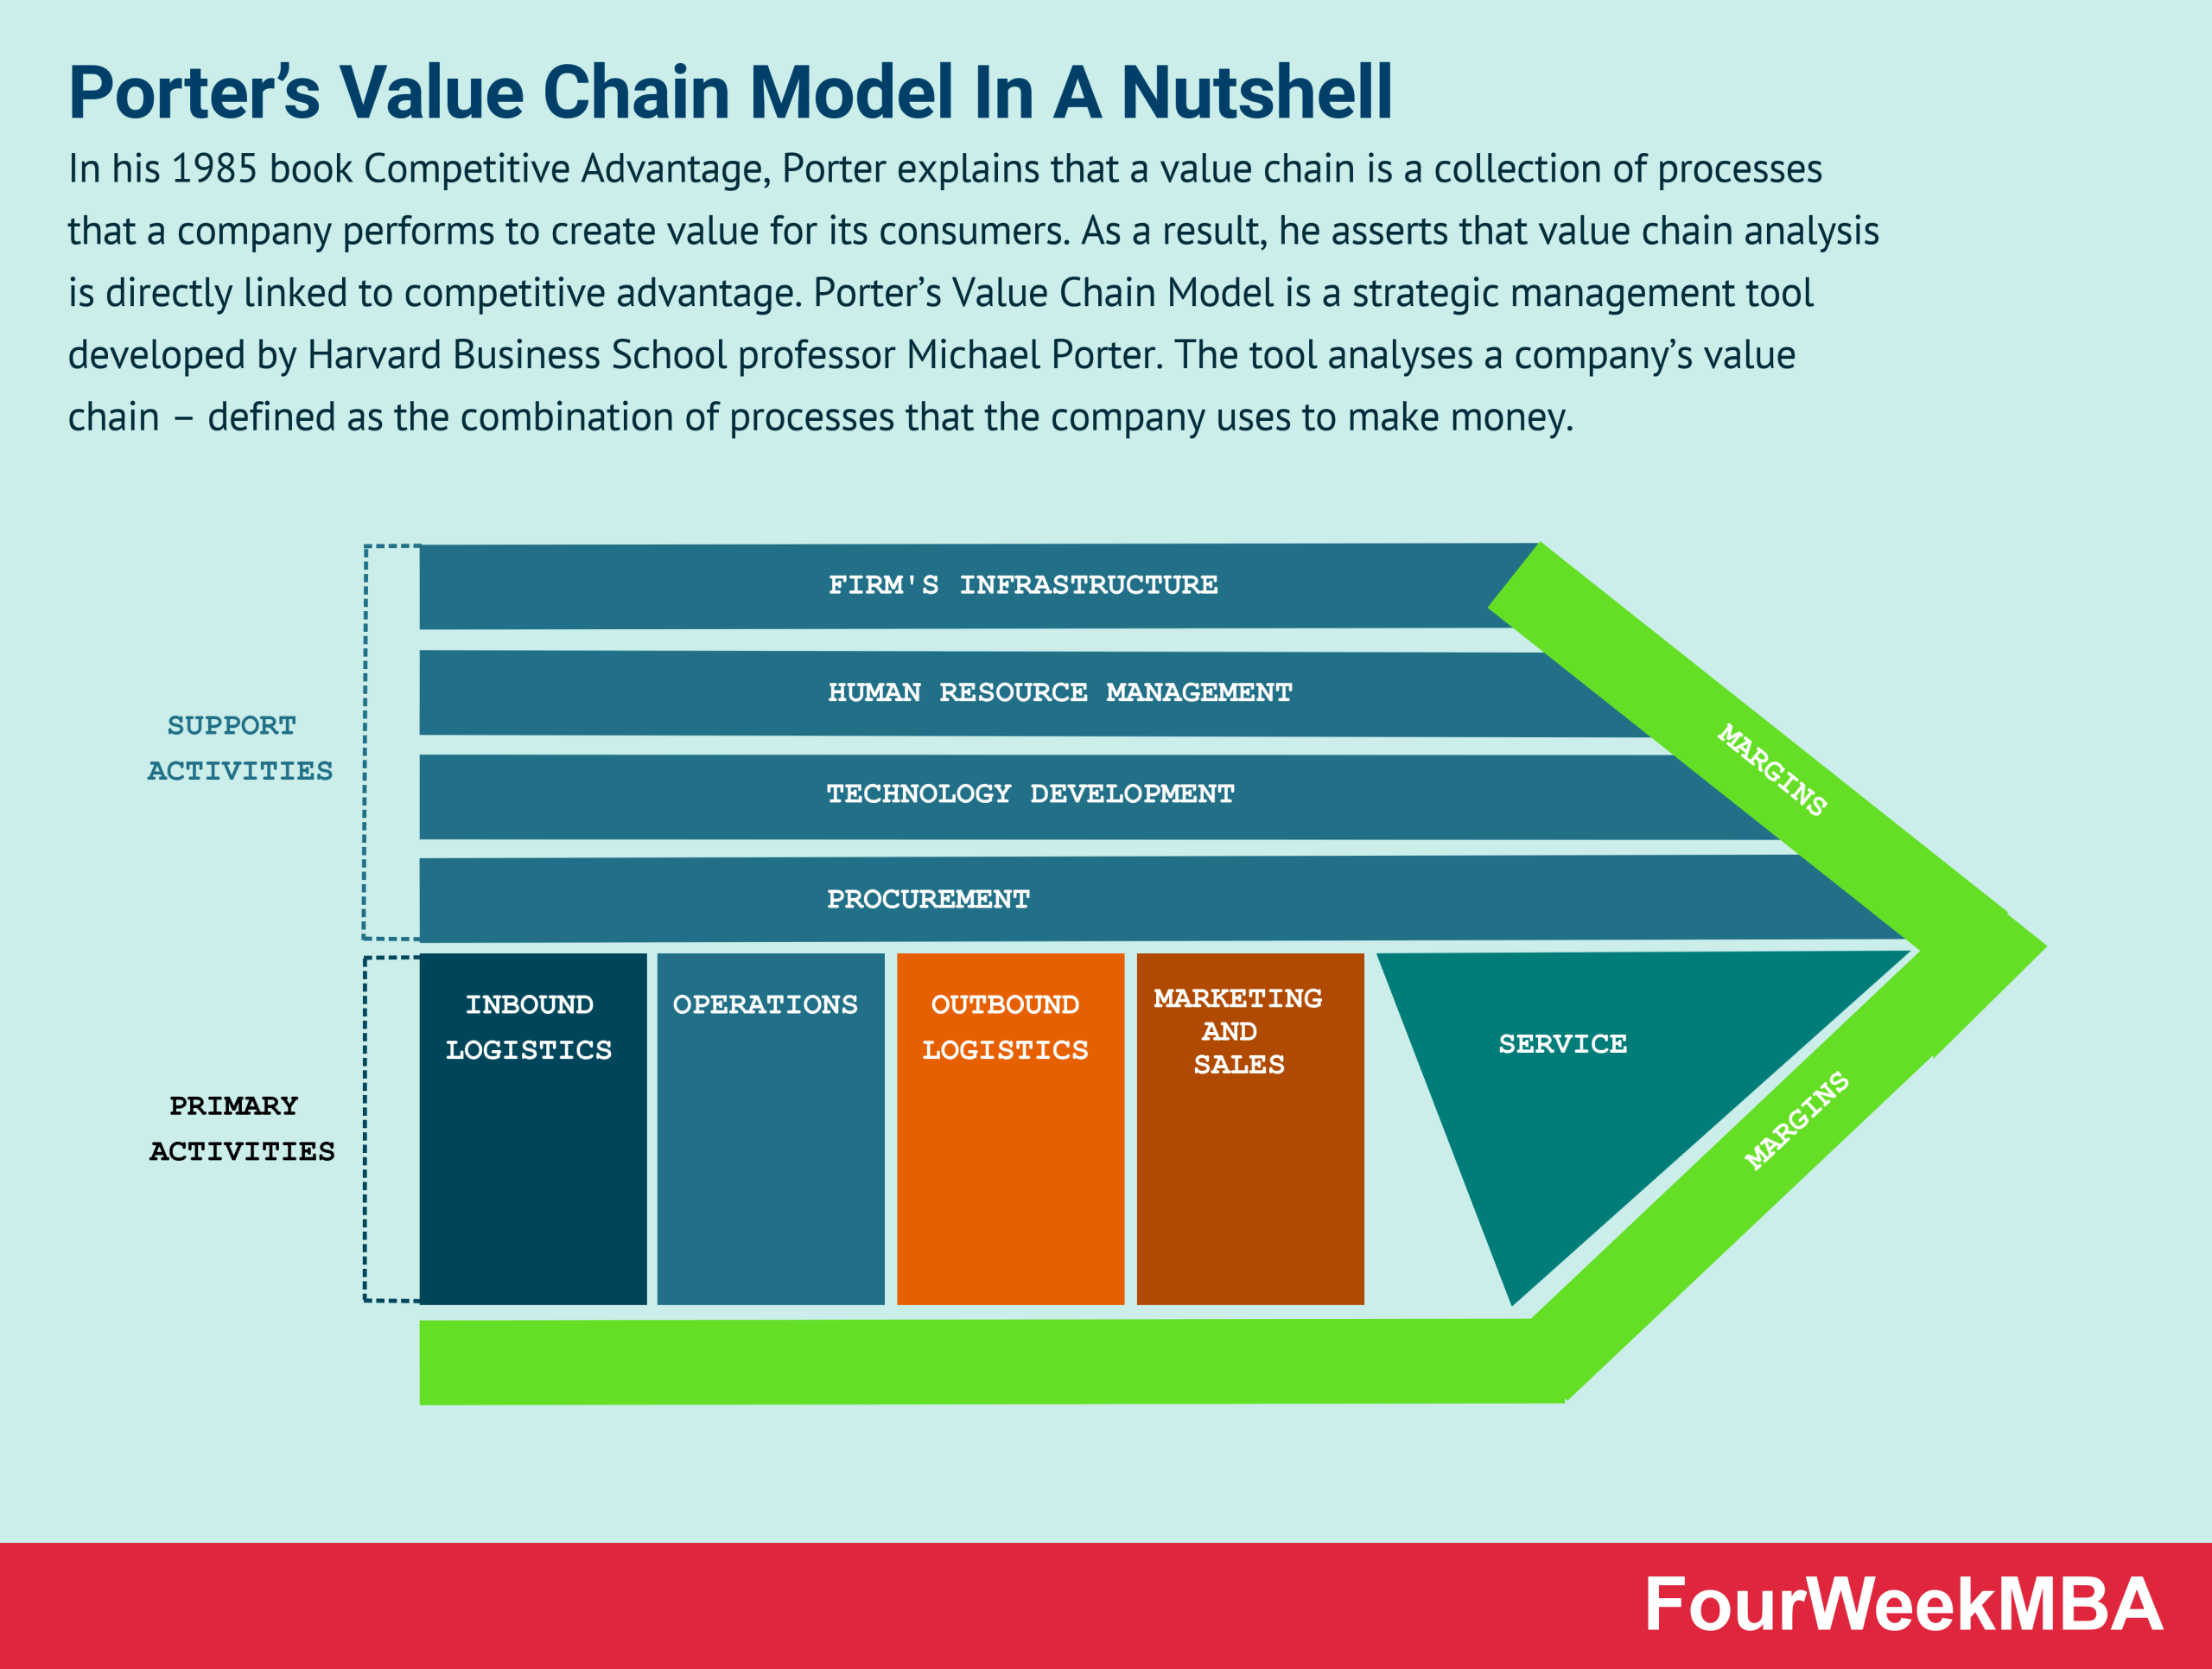 porters-value-chain-model